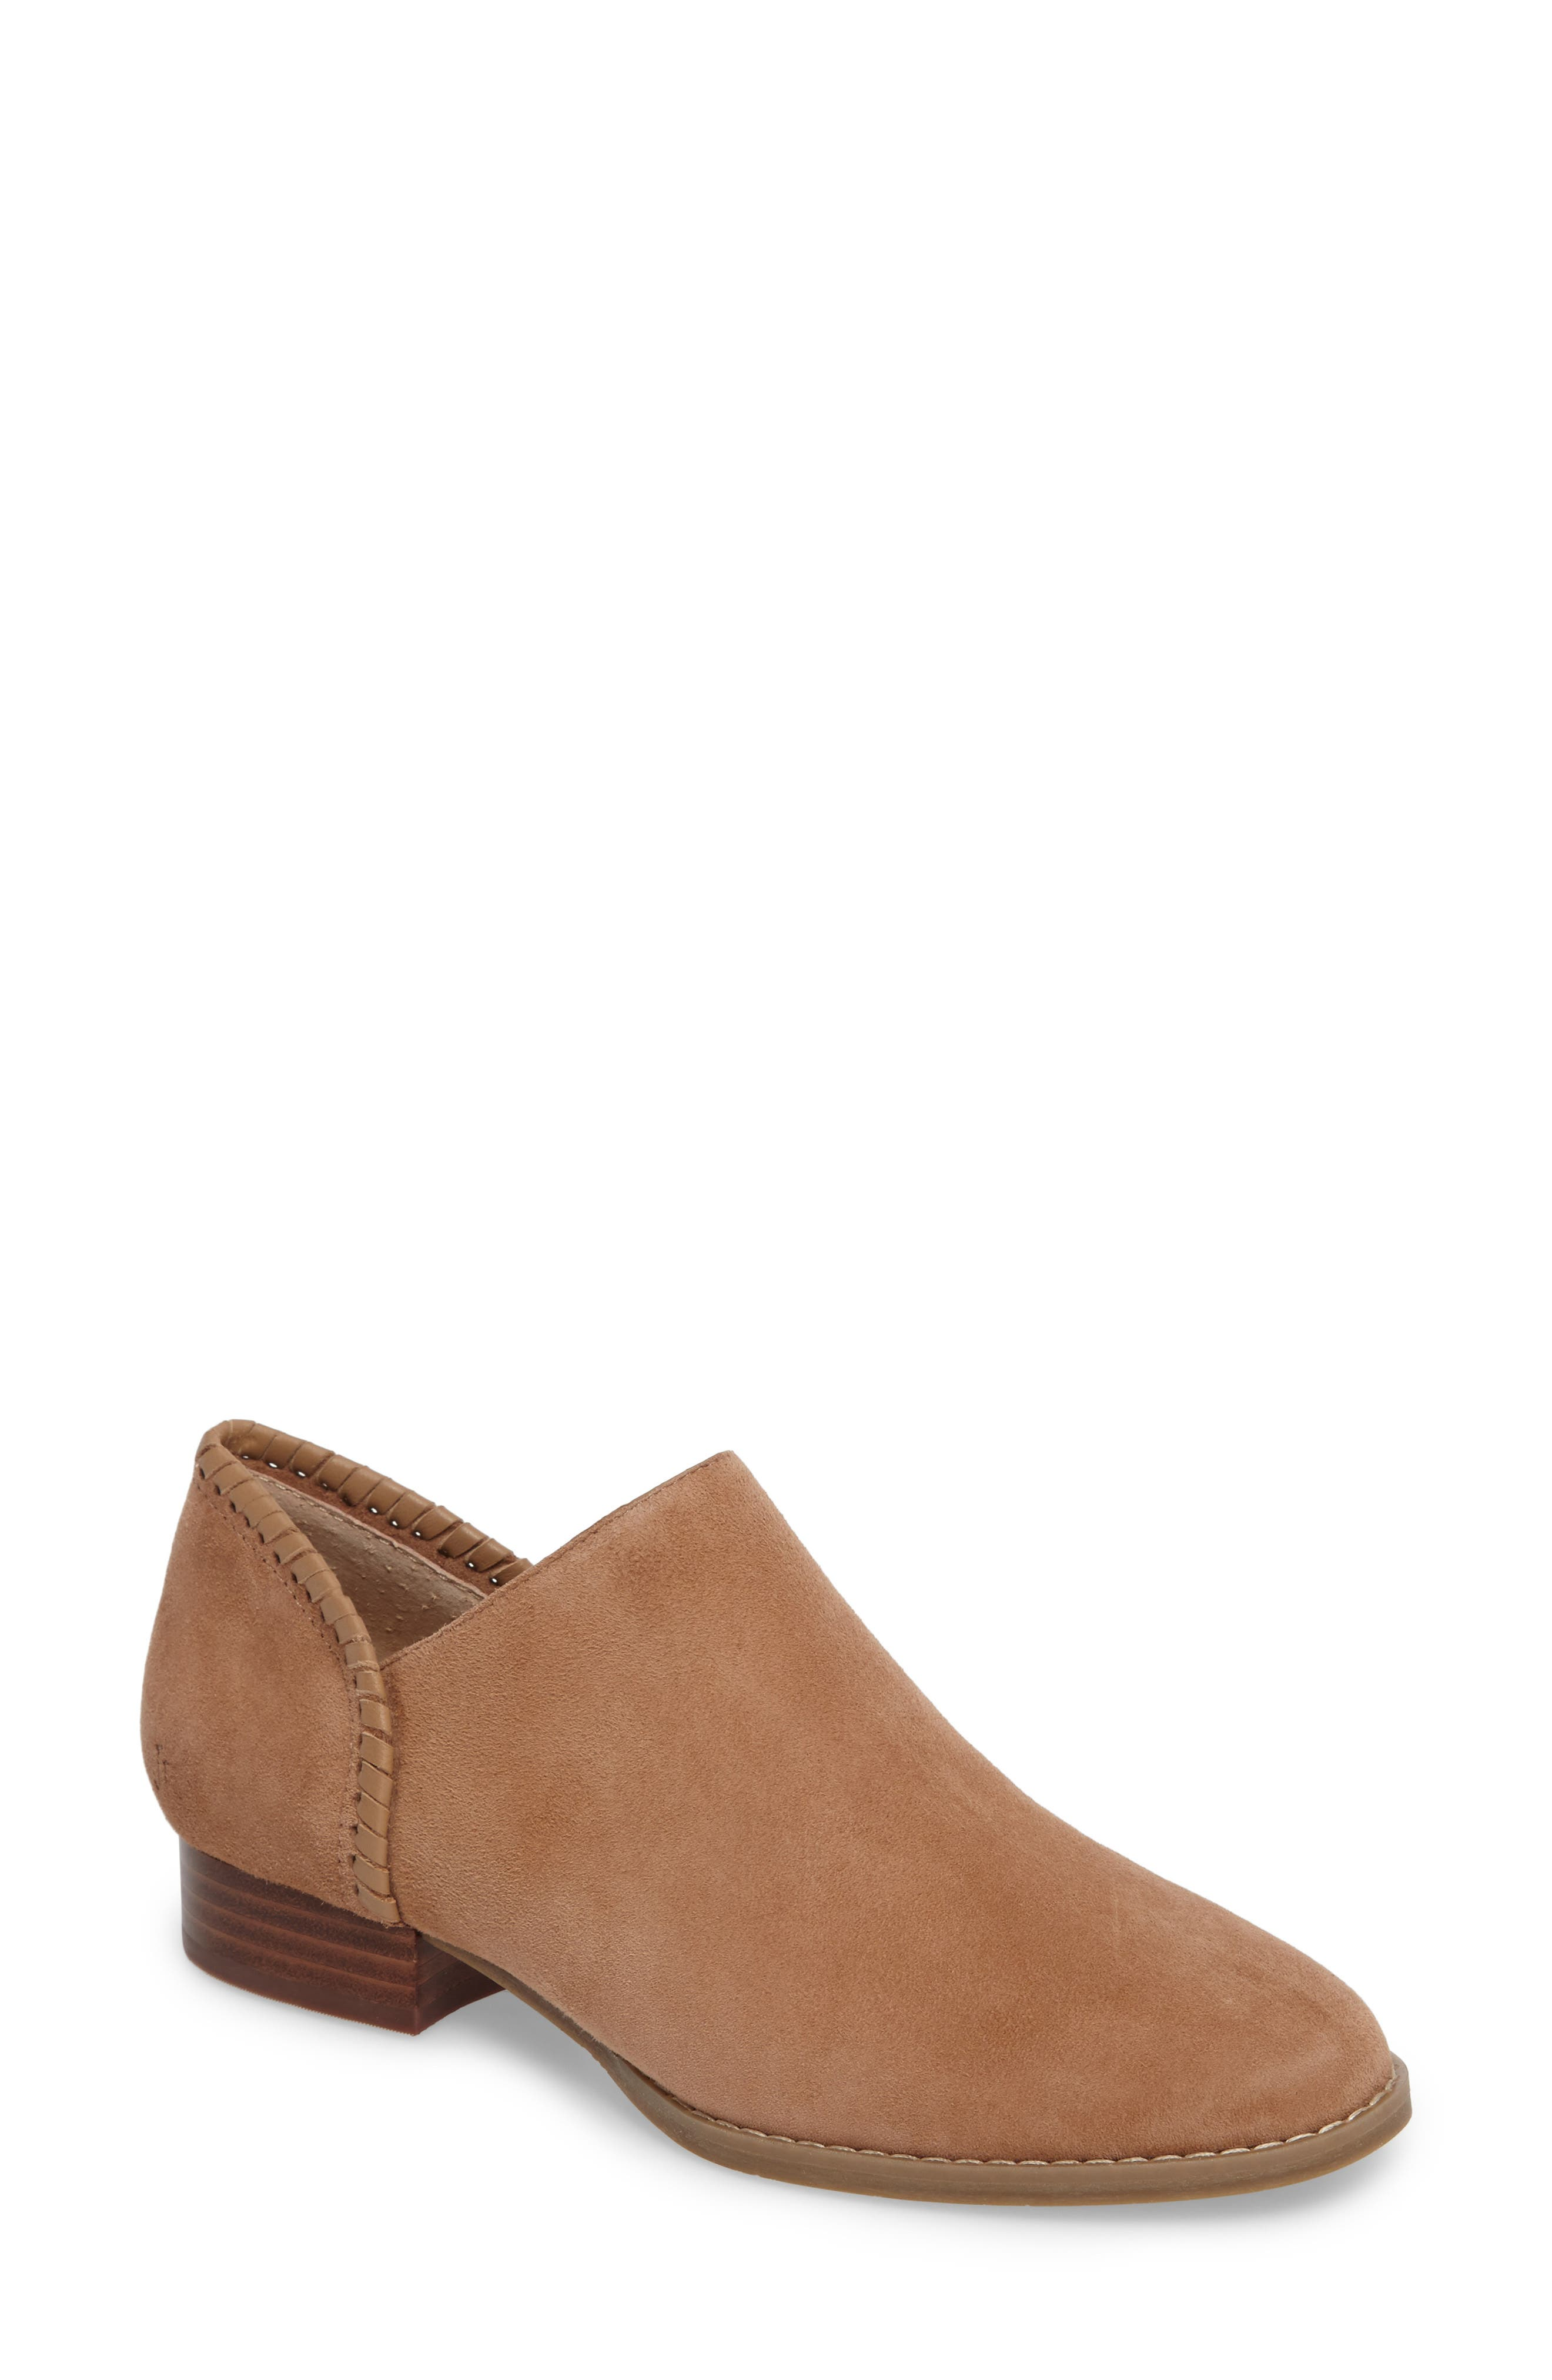 Alternate Image 1 Selected - Jack Rogers Avery Low Bootie (Women)